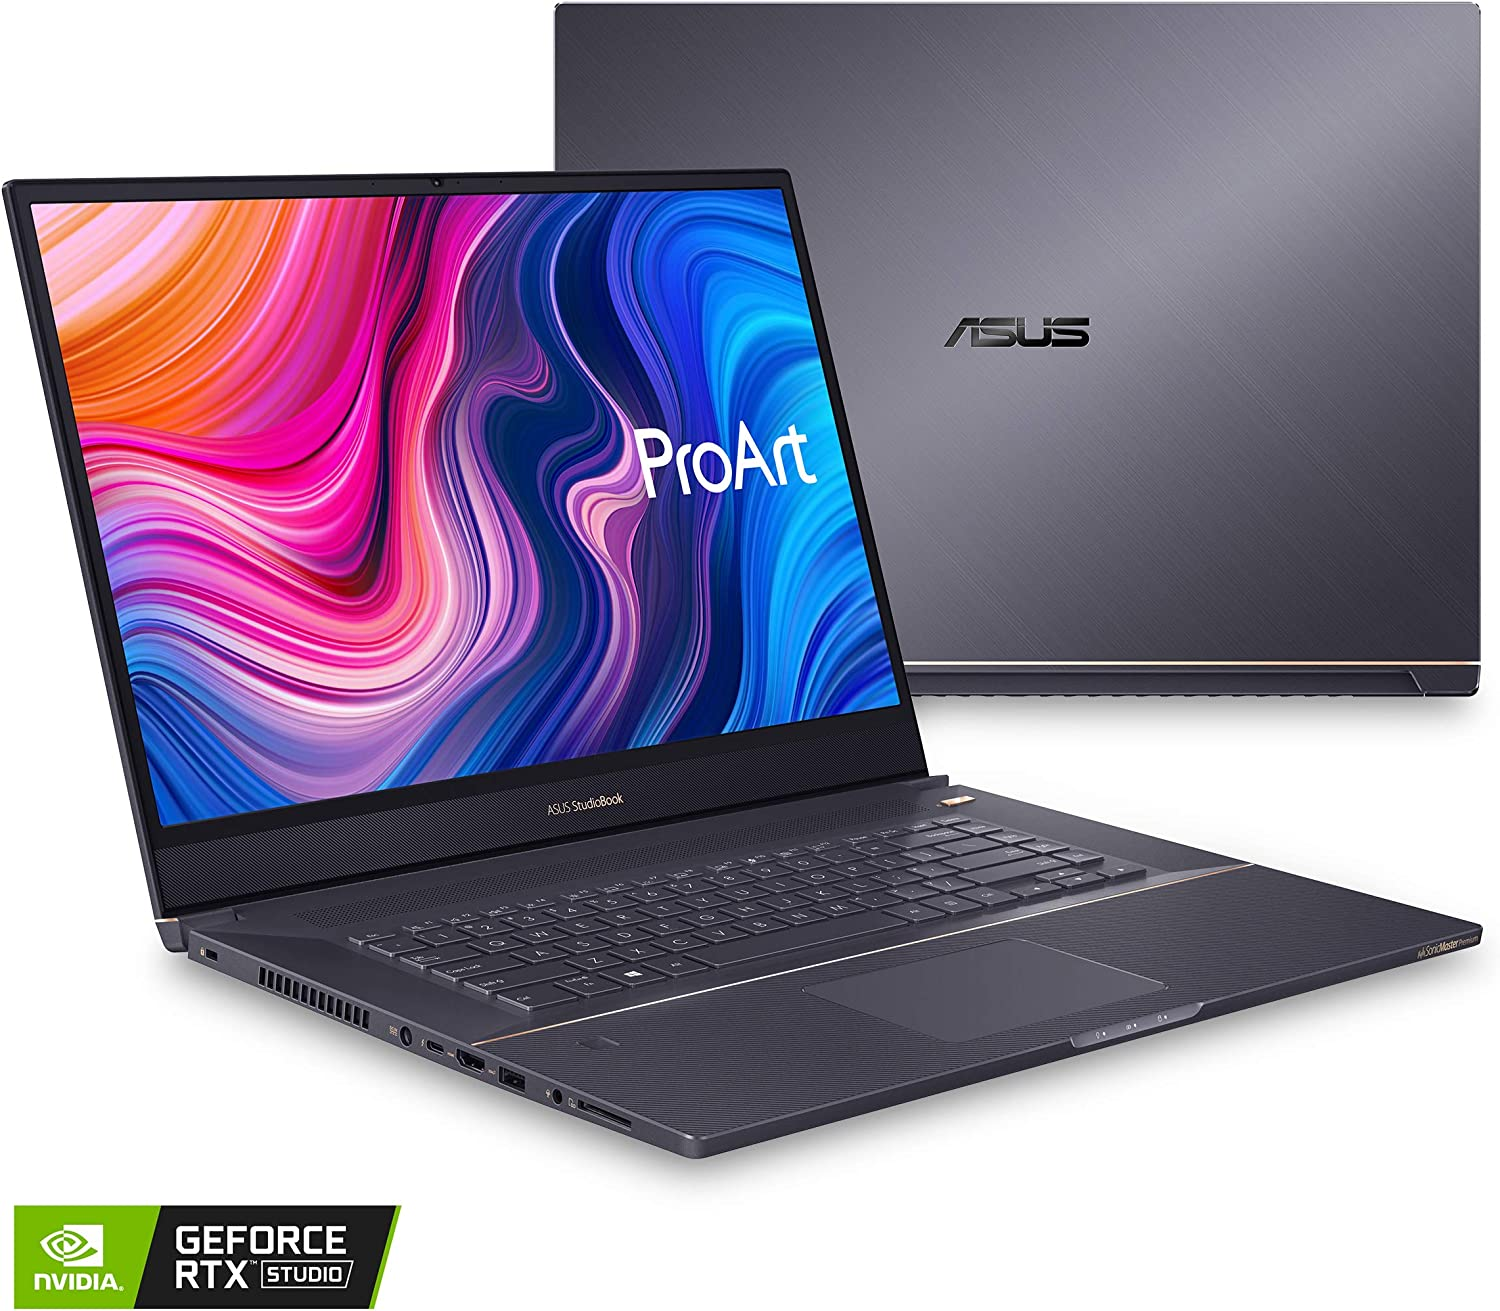 "ASUS ProArt StudioBook 17 Mobile Workstation Laptop, 17"" 16:10 NanoEdge Bezel, Intel Core i7-9750H, 32GB DDR4, 512GB+512GB RAID-0 SSD, NVIDIA GeForce RTX 2060, Windows 10 Pro, H700GV-XS76, Star Gray"